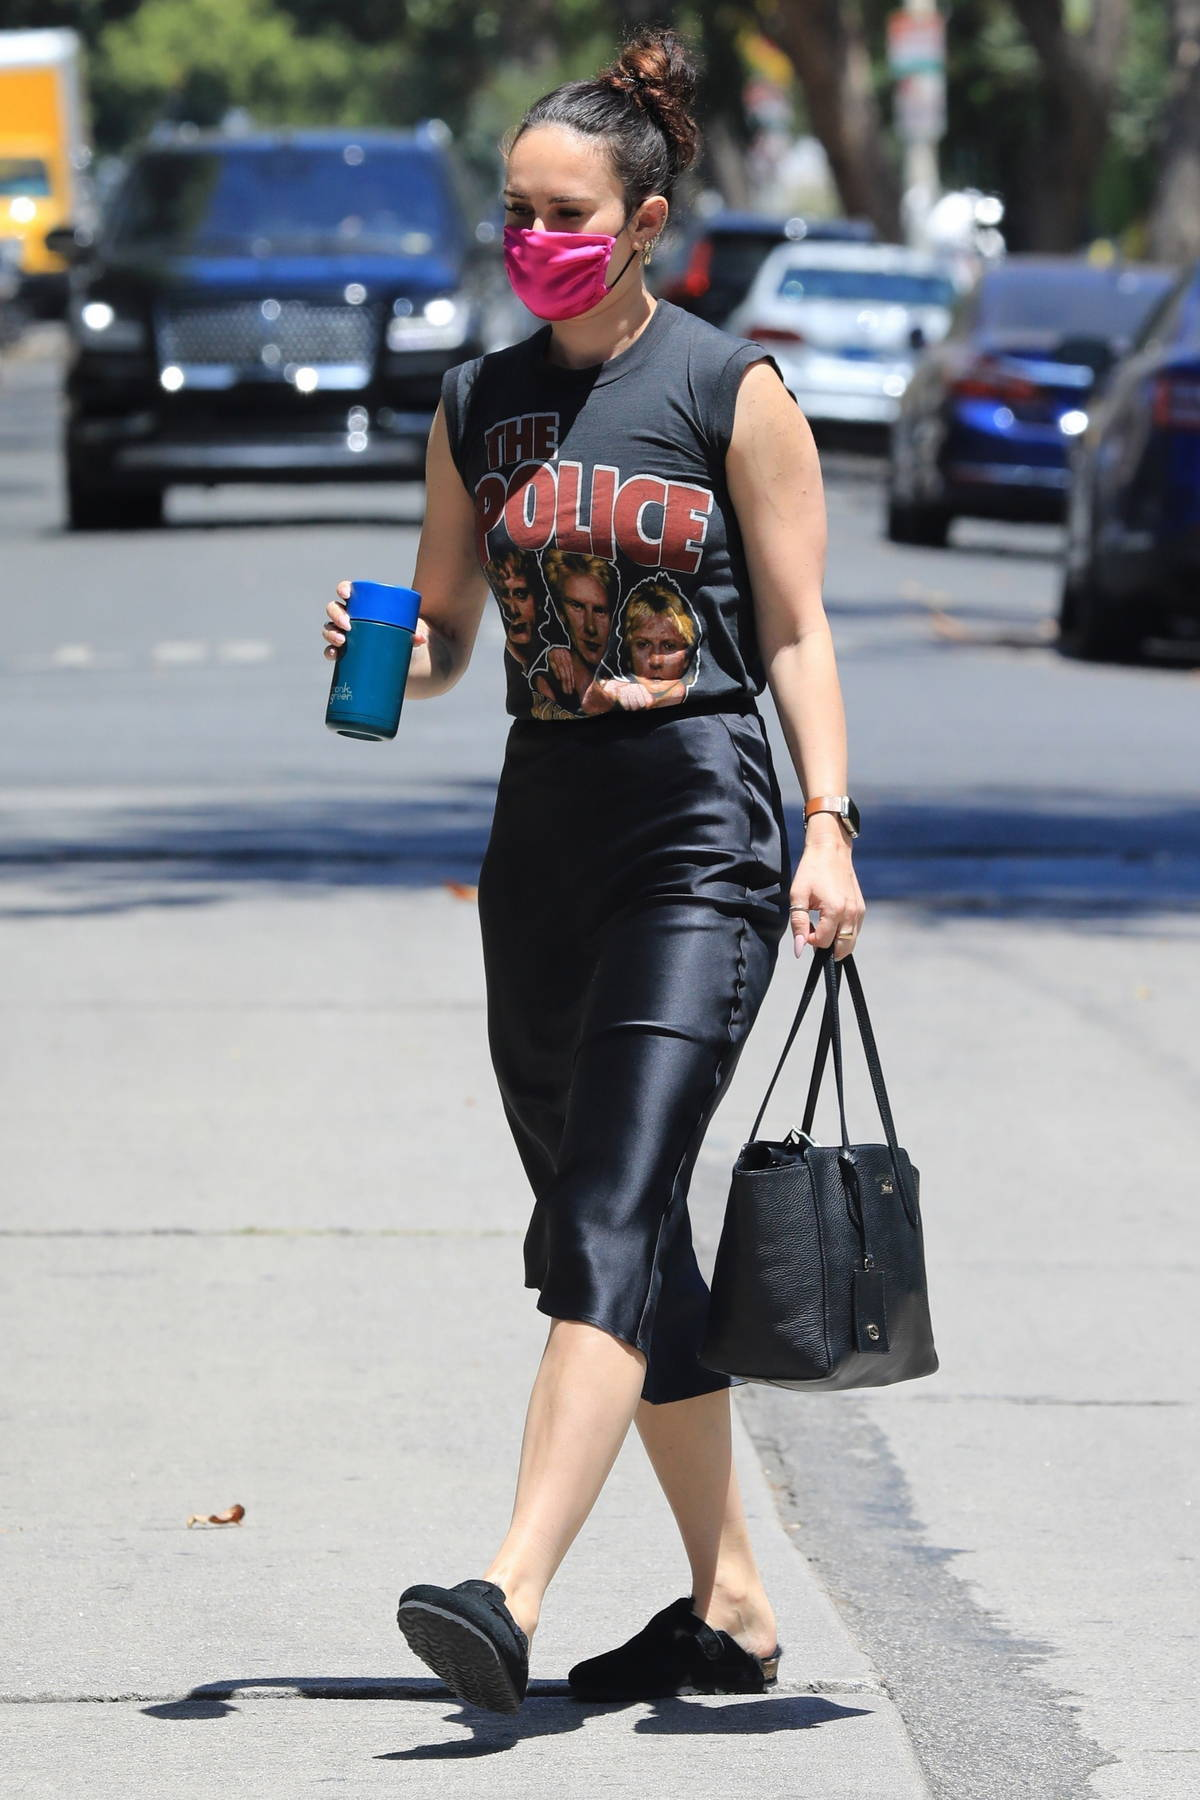 Rumer Willis leaving Pilates wearing a 'The Police' t-shirt in West Hollywood, California